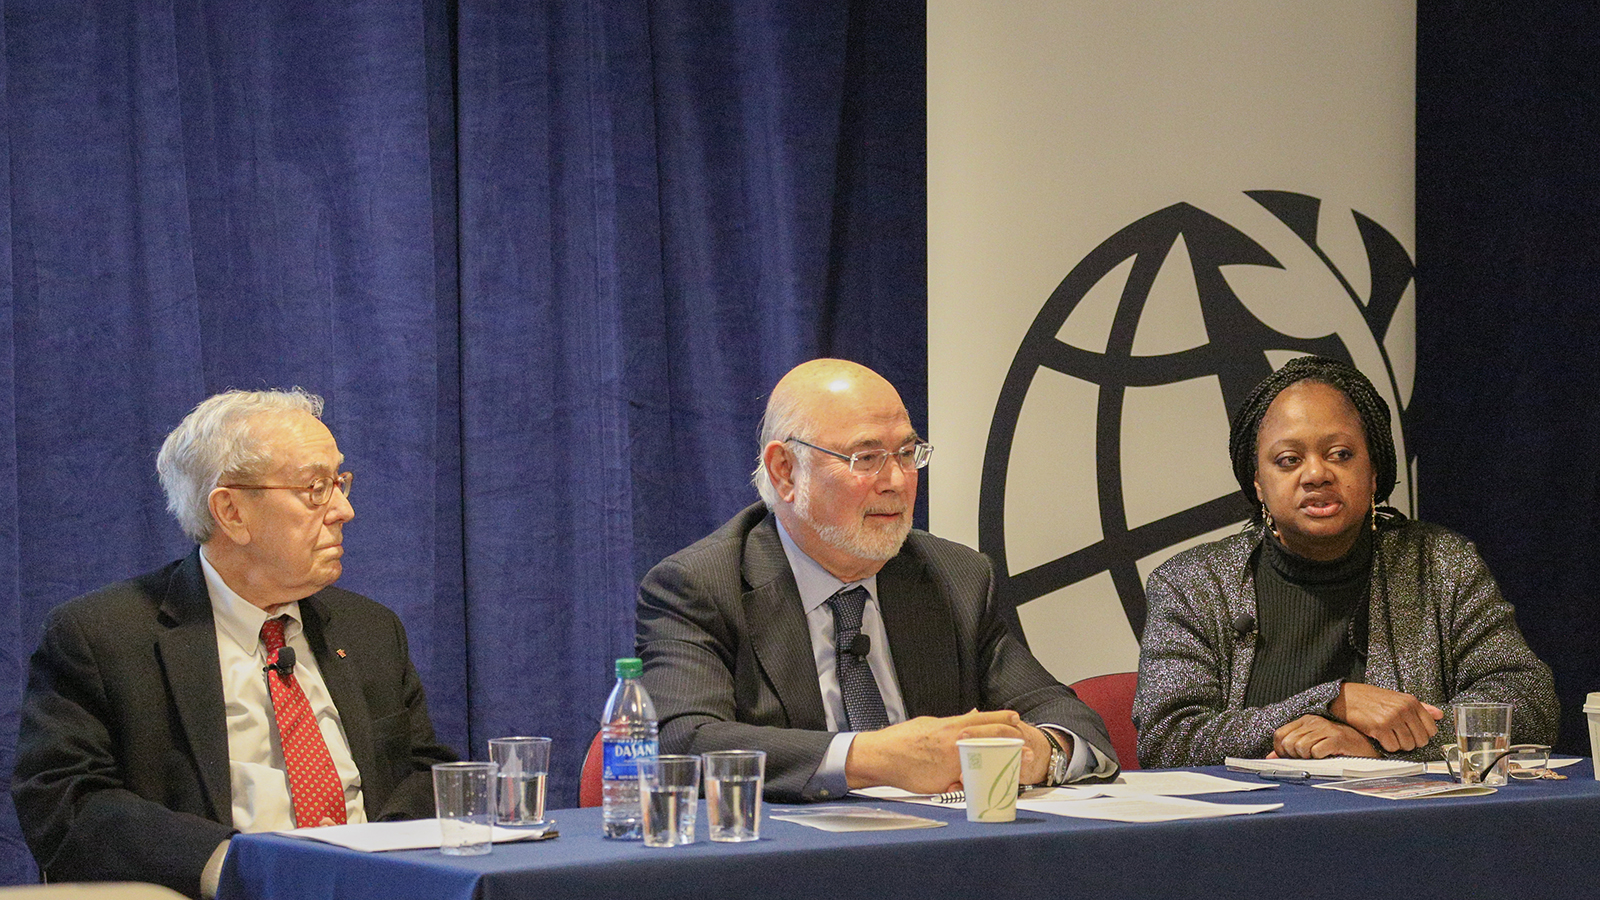 """Approaches to Nuclear Disarmament"" panel featuring James Goodby, Jonathan Granoff, and Bonnie Jenkins."